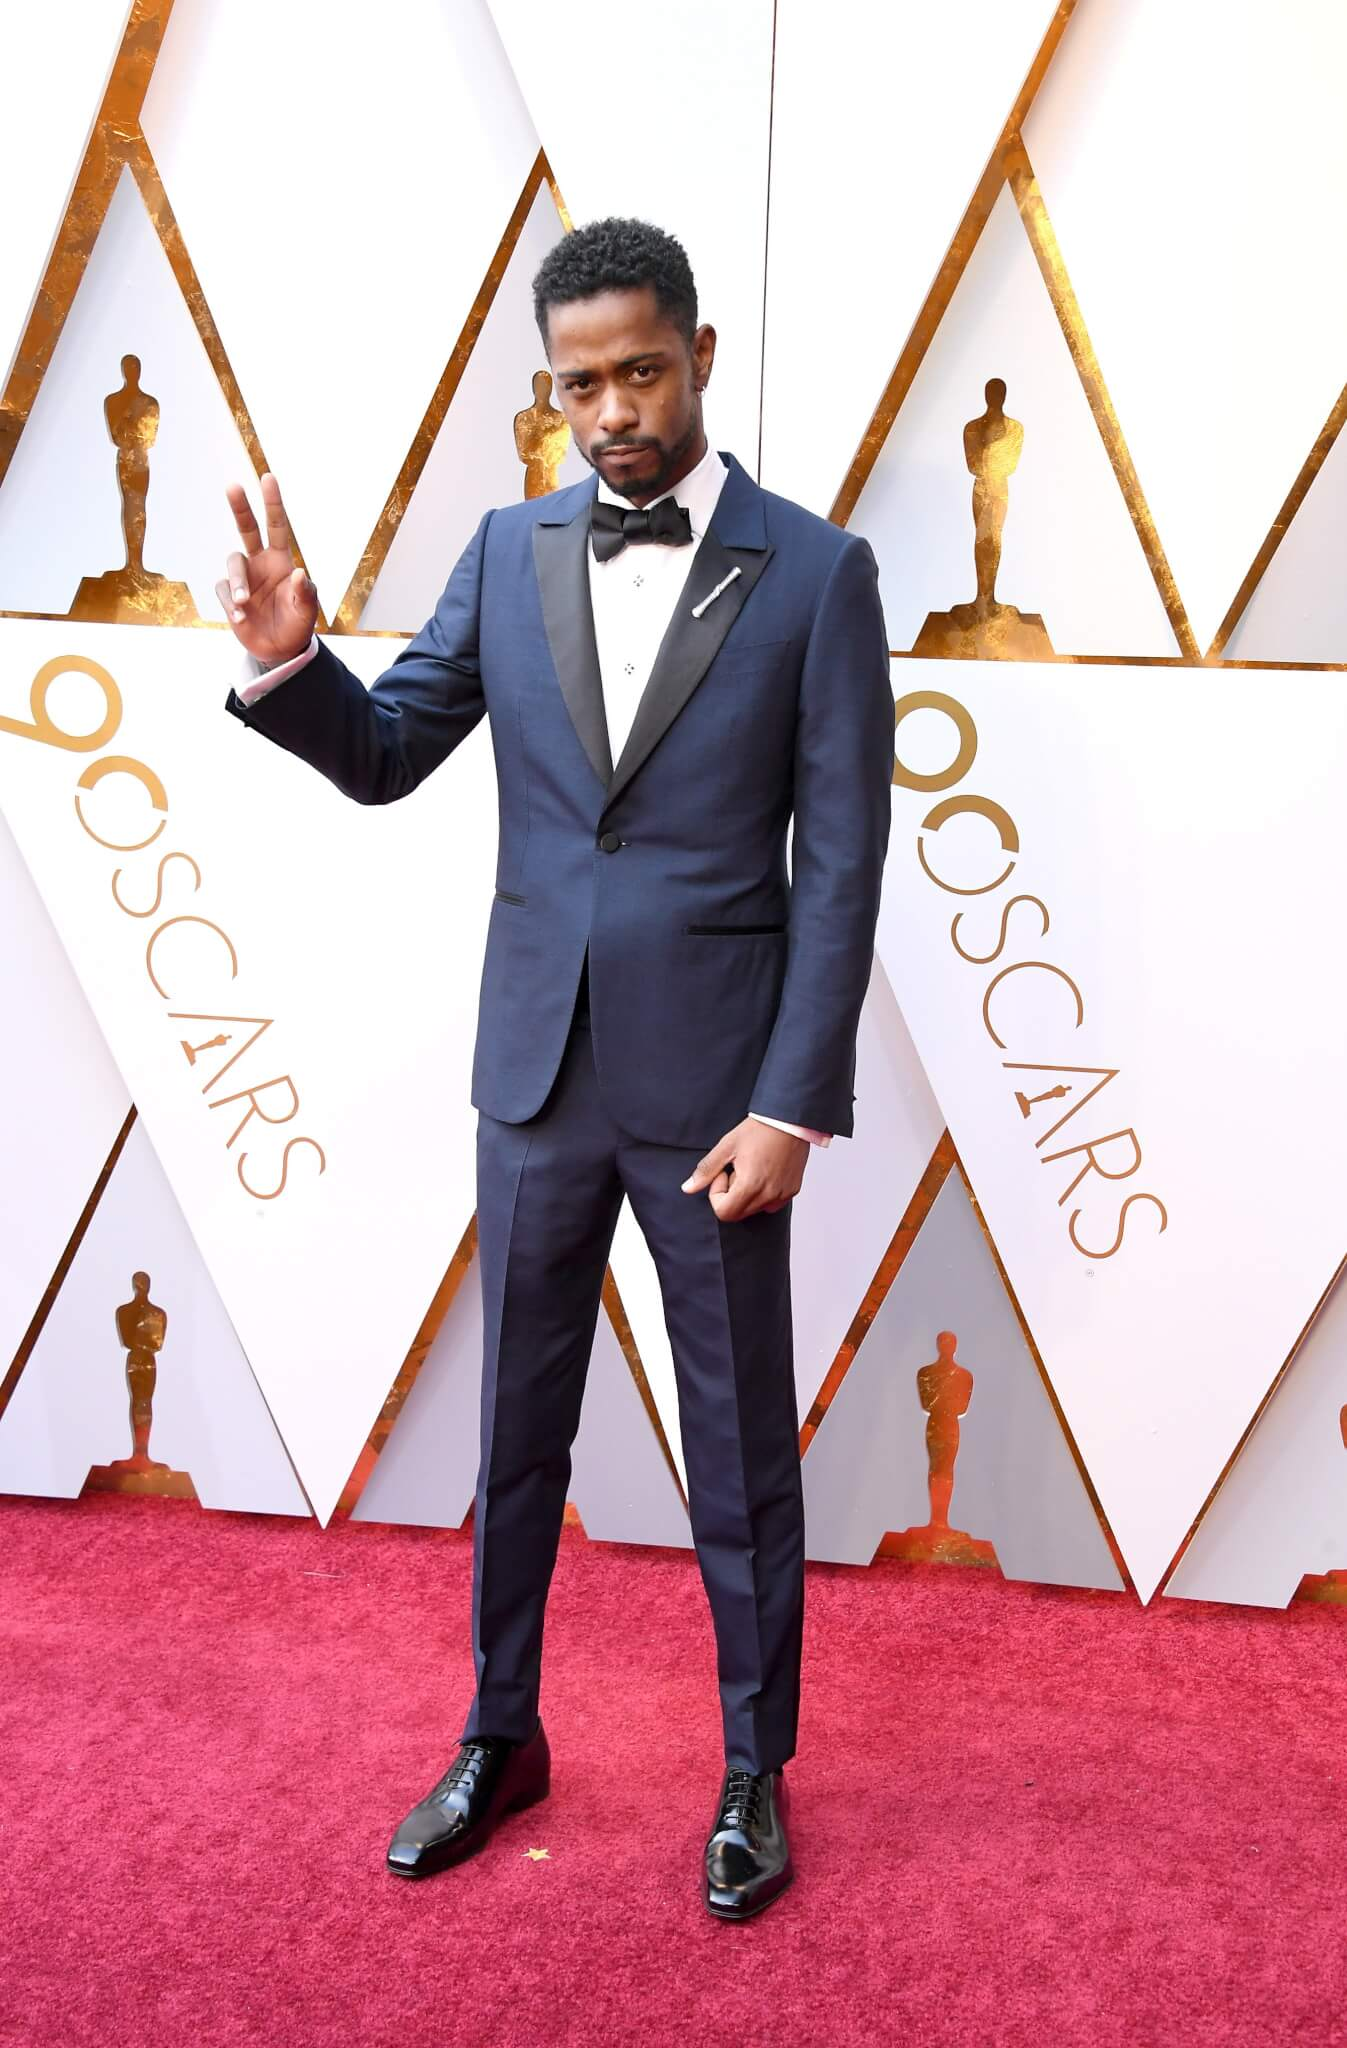 Lakeith Stanfield - Oscars 2018 Red Carpet